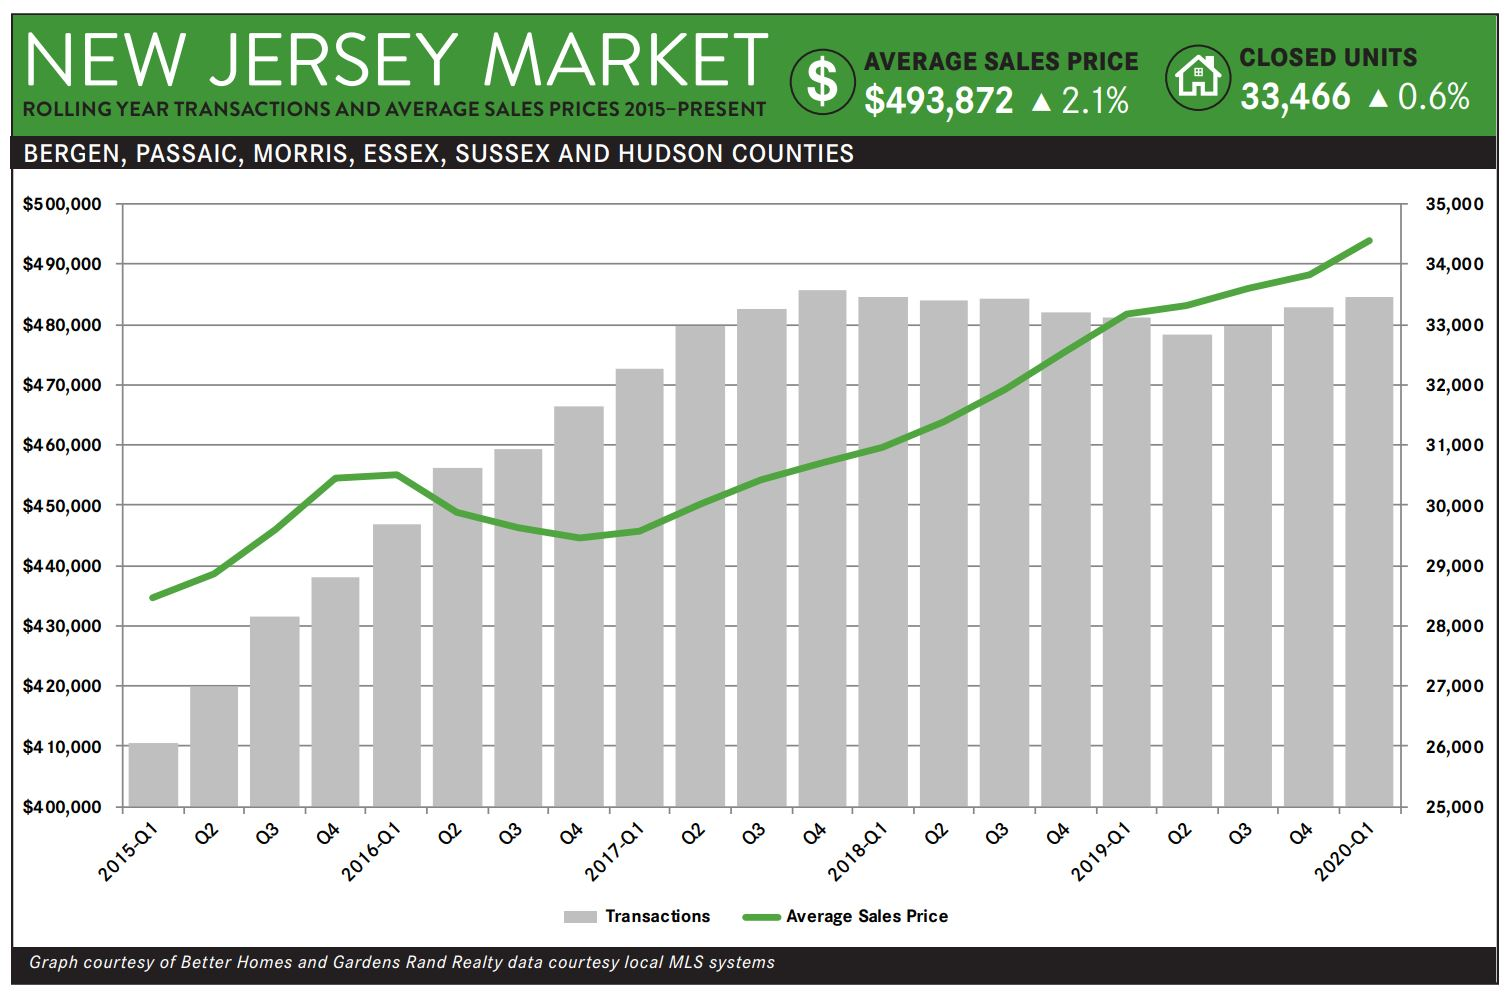 NJ Market Report Chart